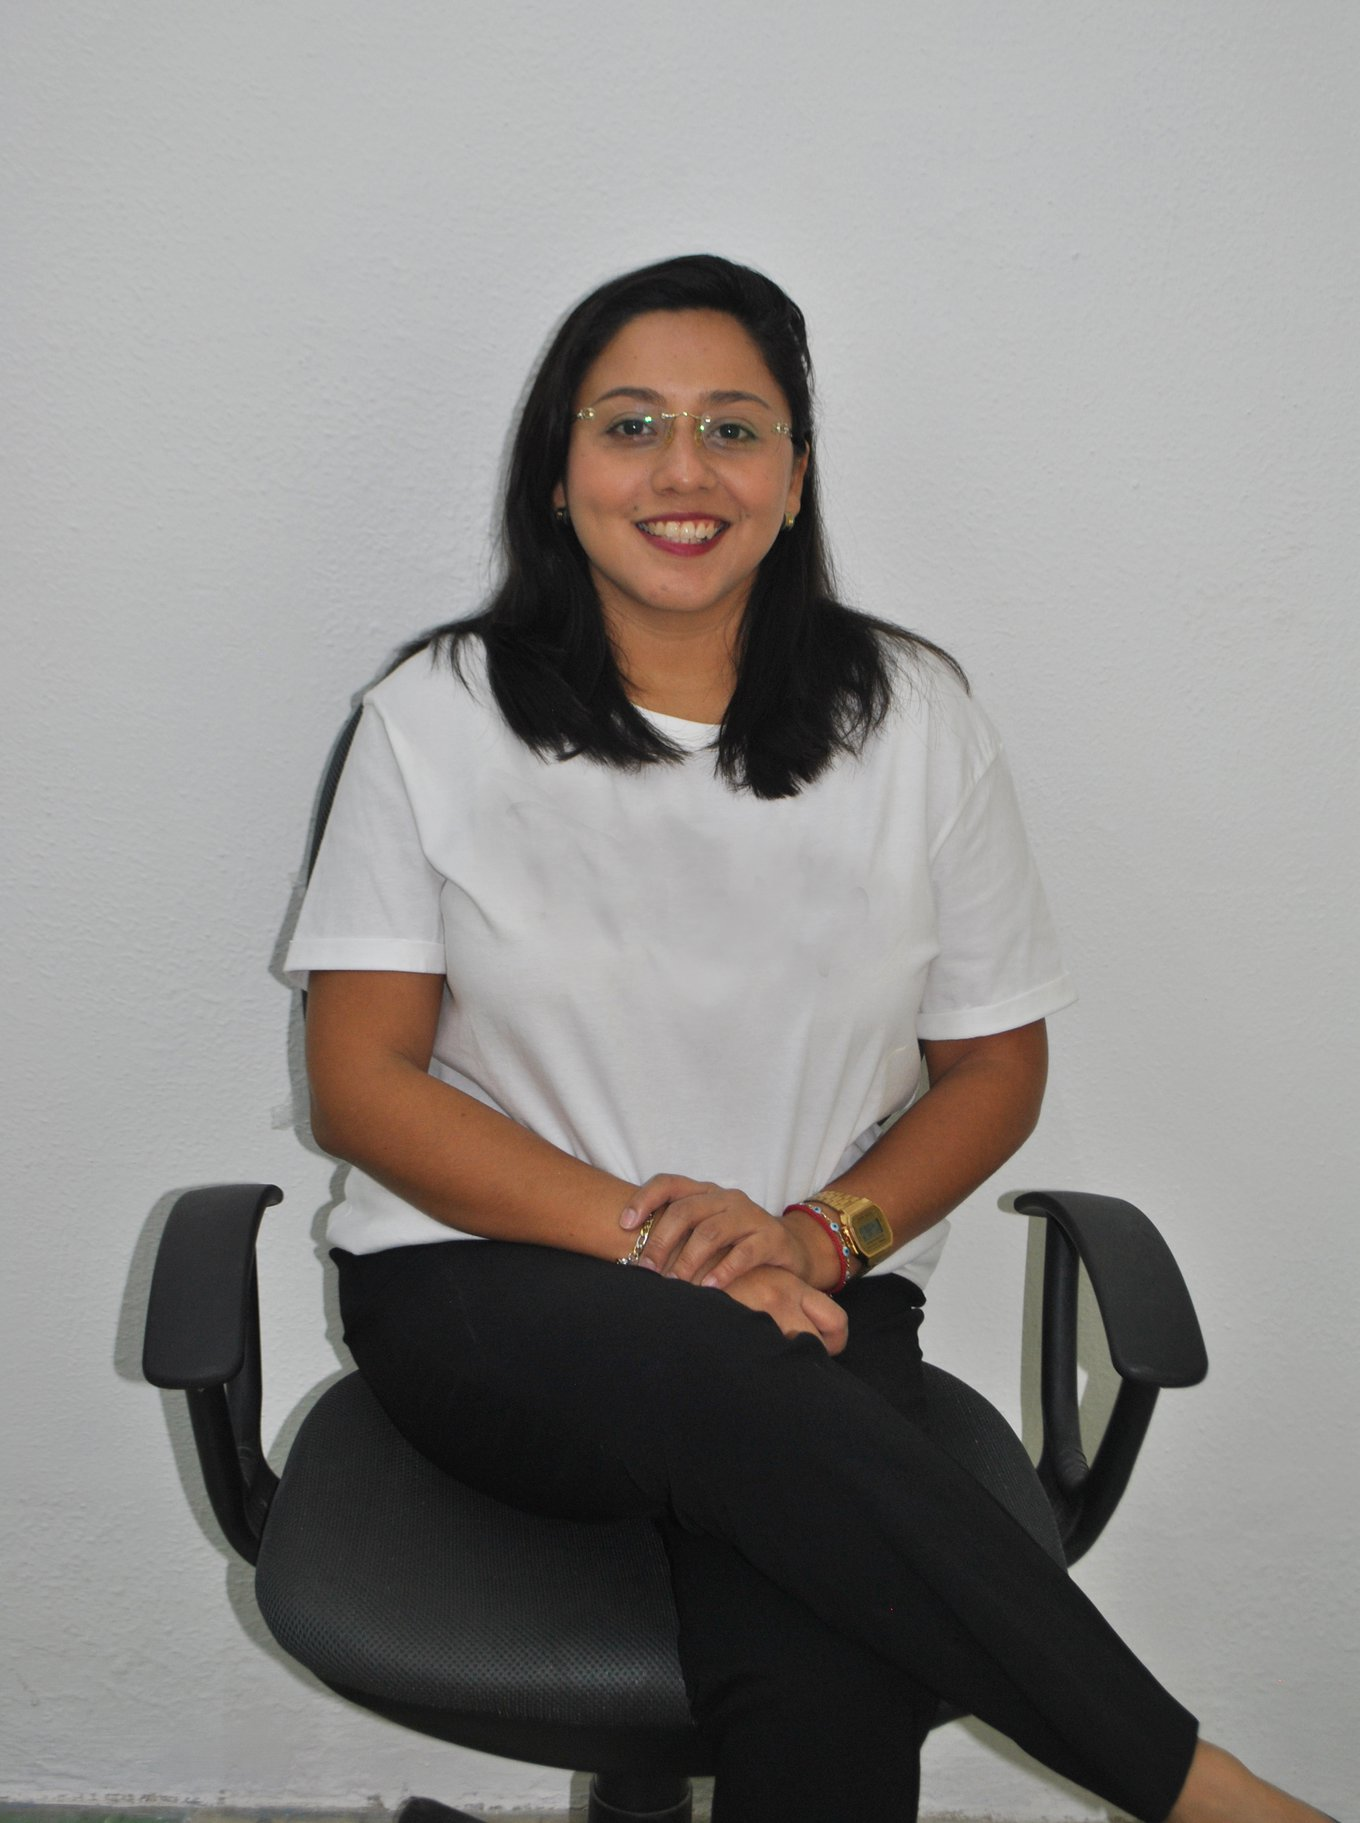 Photo of Mariel Pérez Carrillo